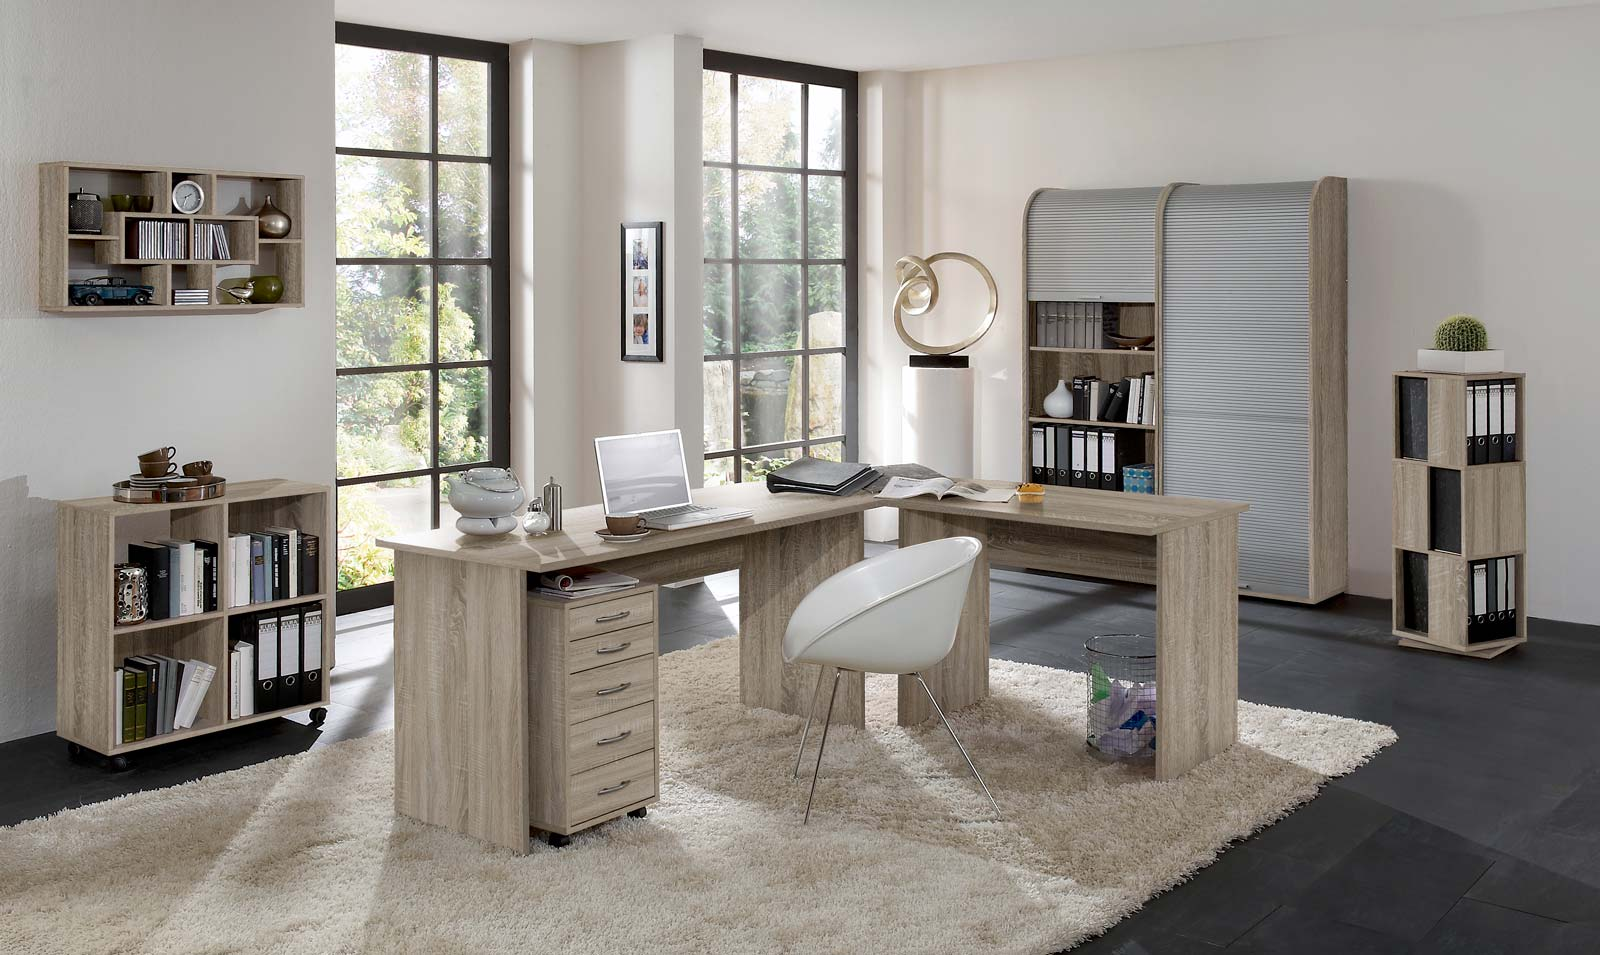 arbeitszimmer schreibtisch b rom bel komplett set office. Black Bedroom Furniture Sets. Home Design Ideas